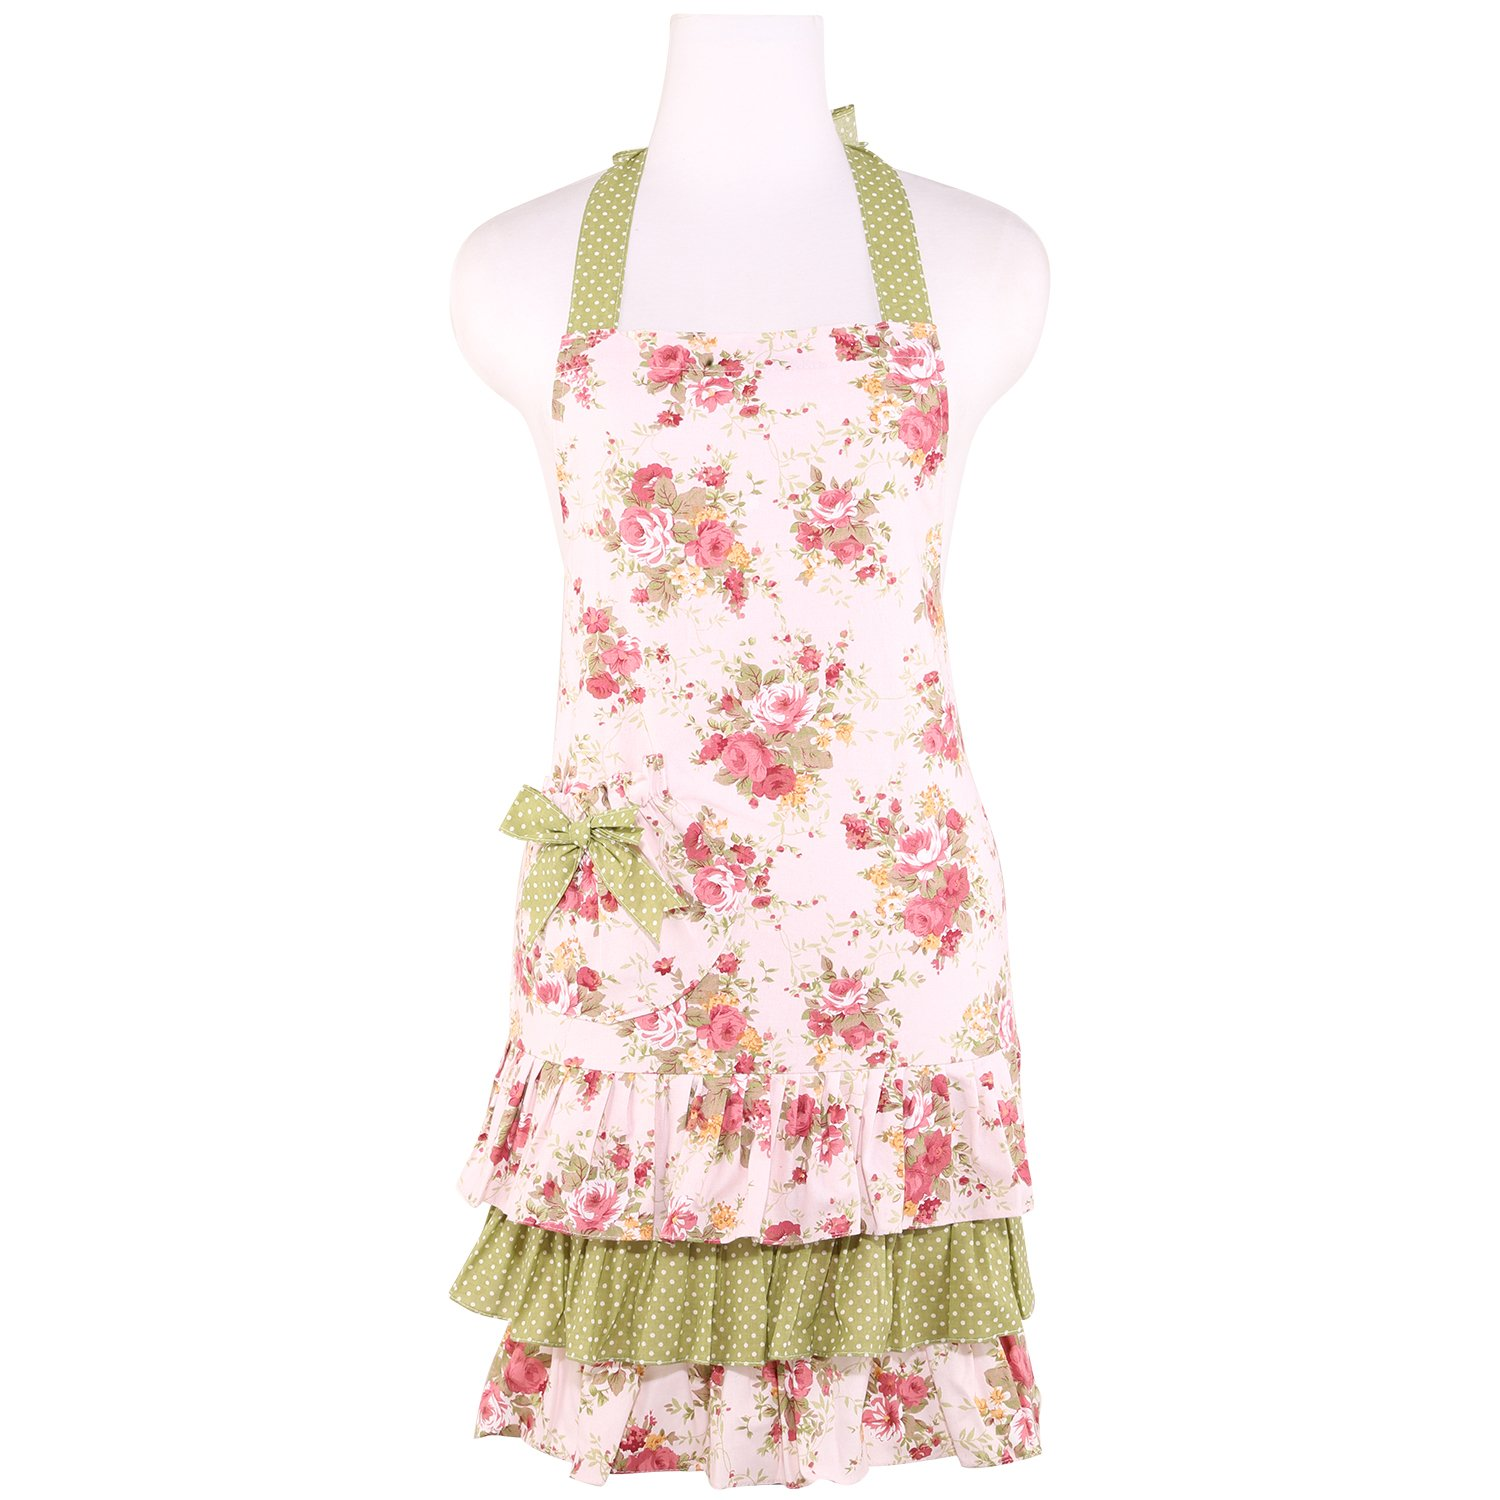 Frilly Kitchen Aprons for Women with Pocket by Neoviva, Style Doris, Floral Quartz Pink